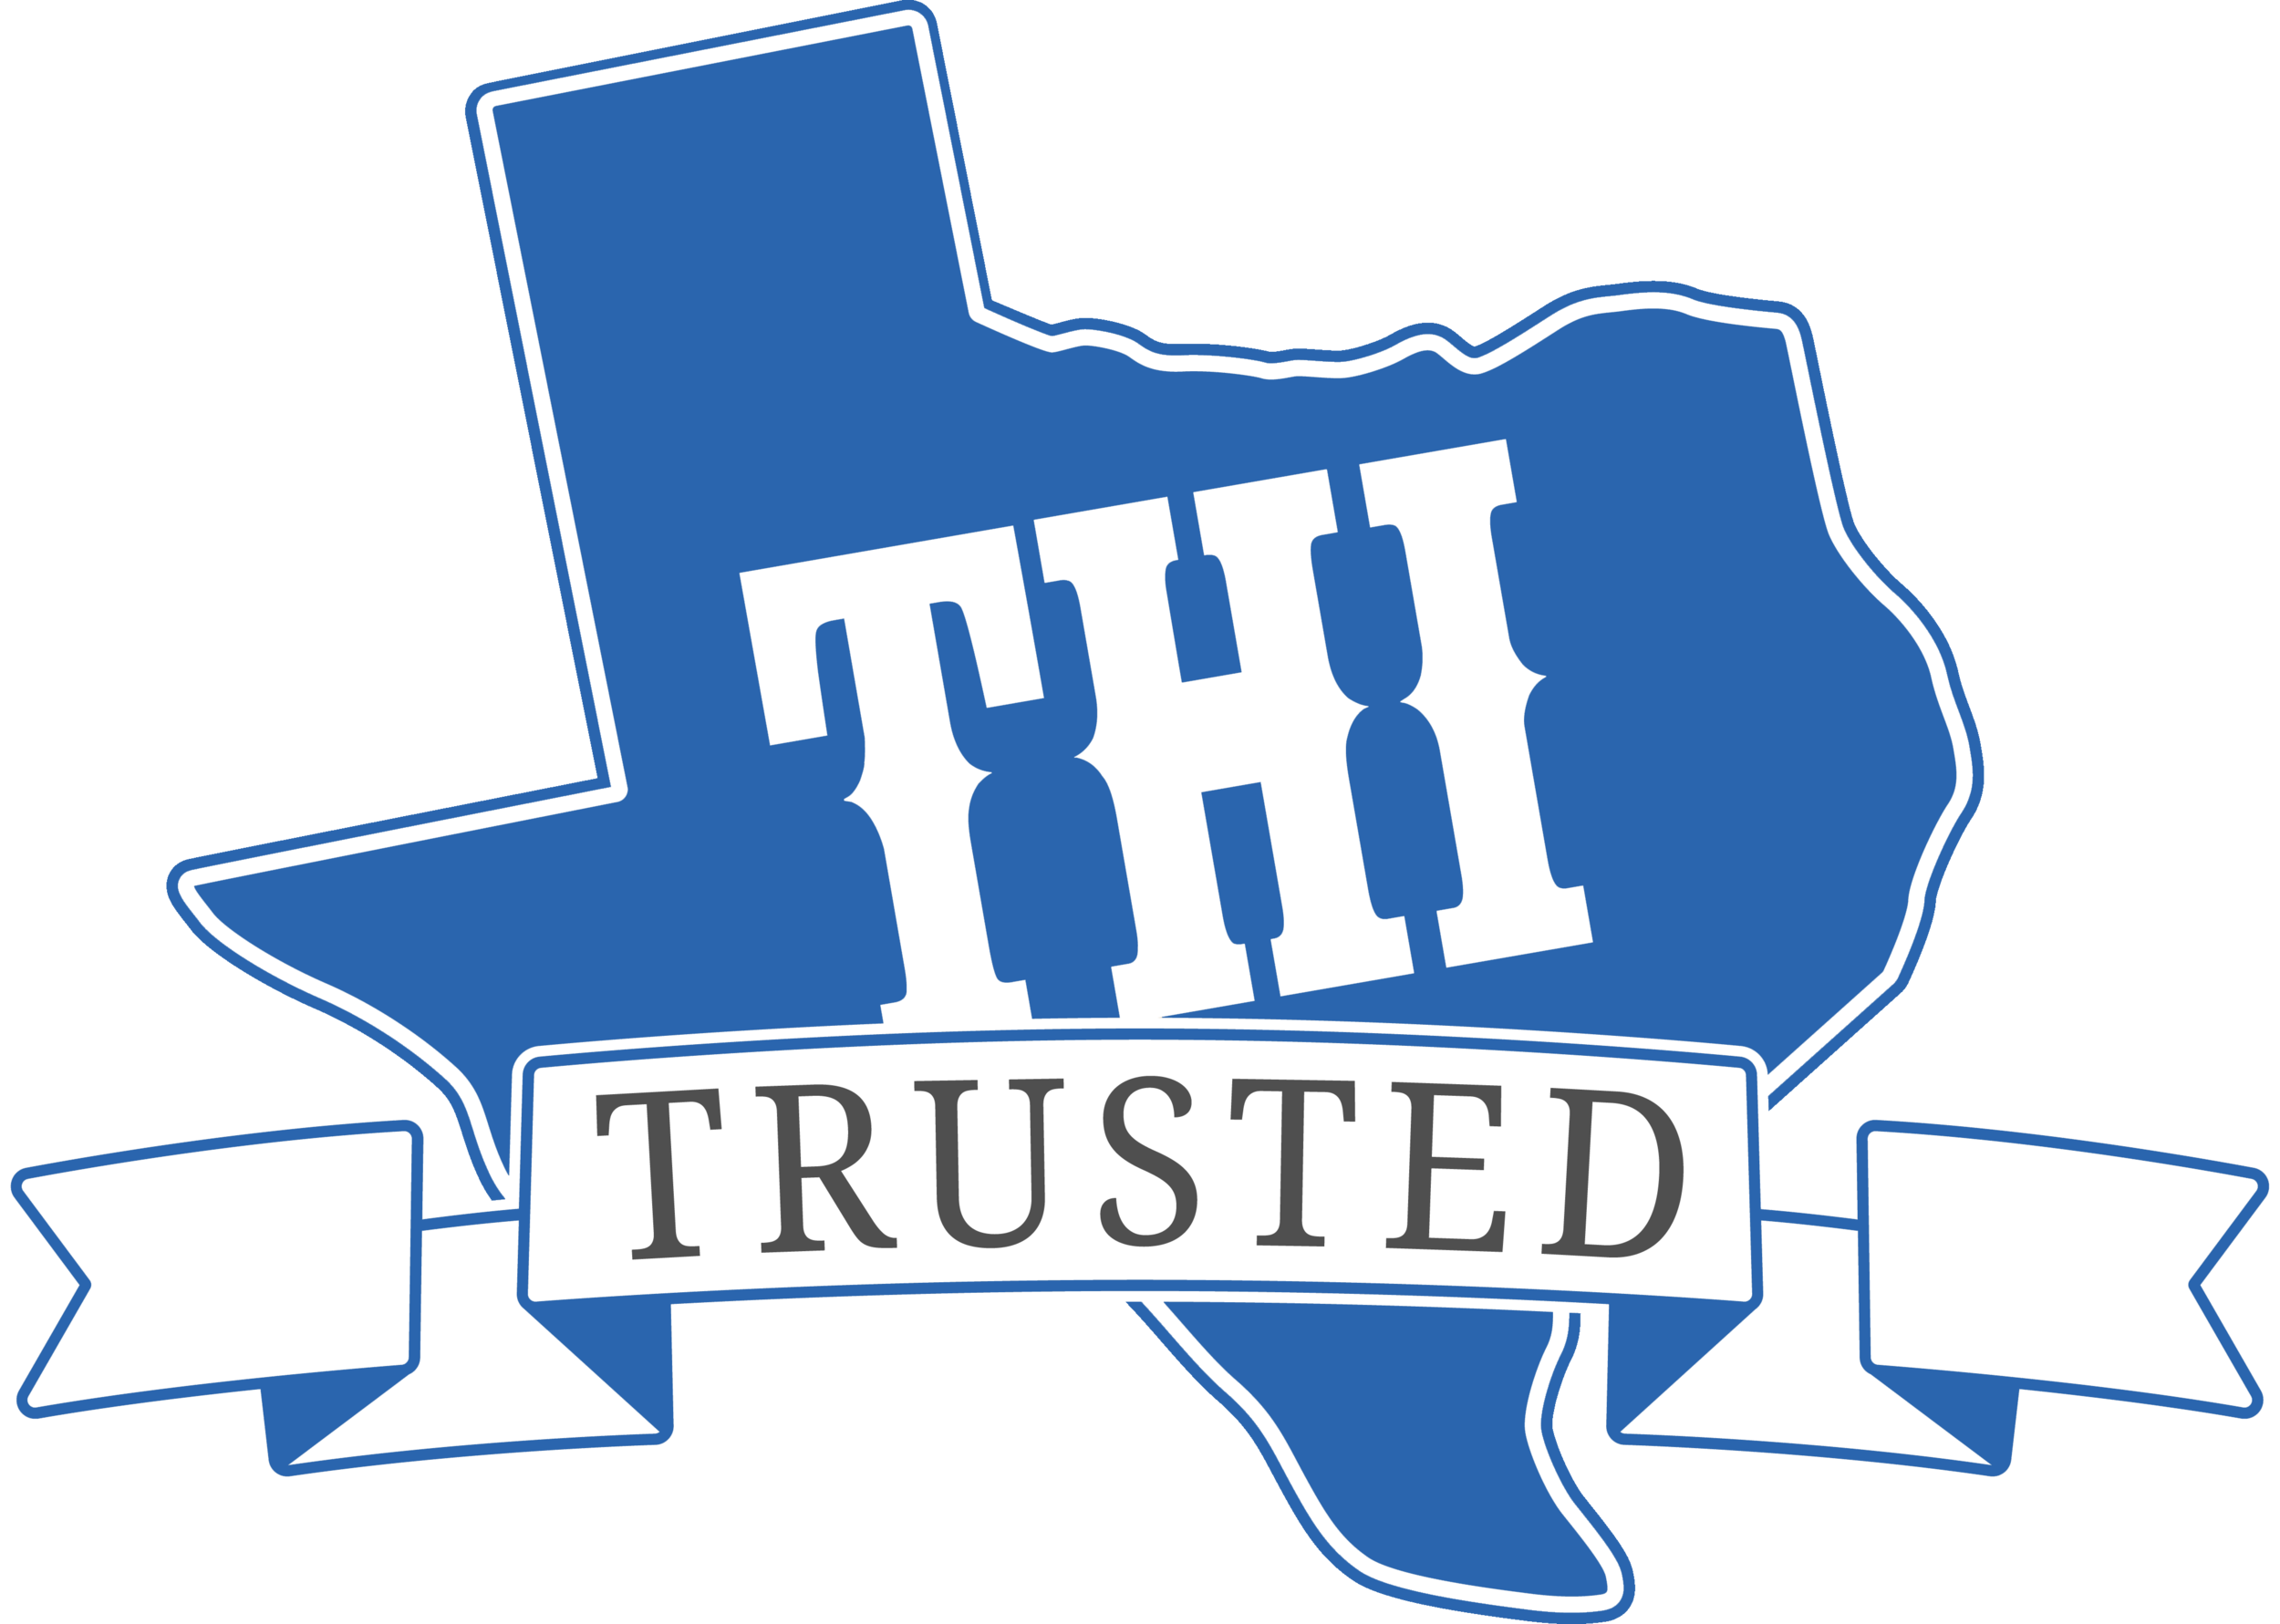 Trusted2-Blue.png